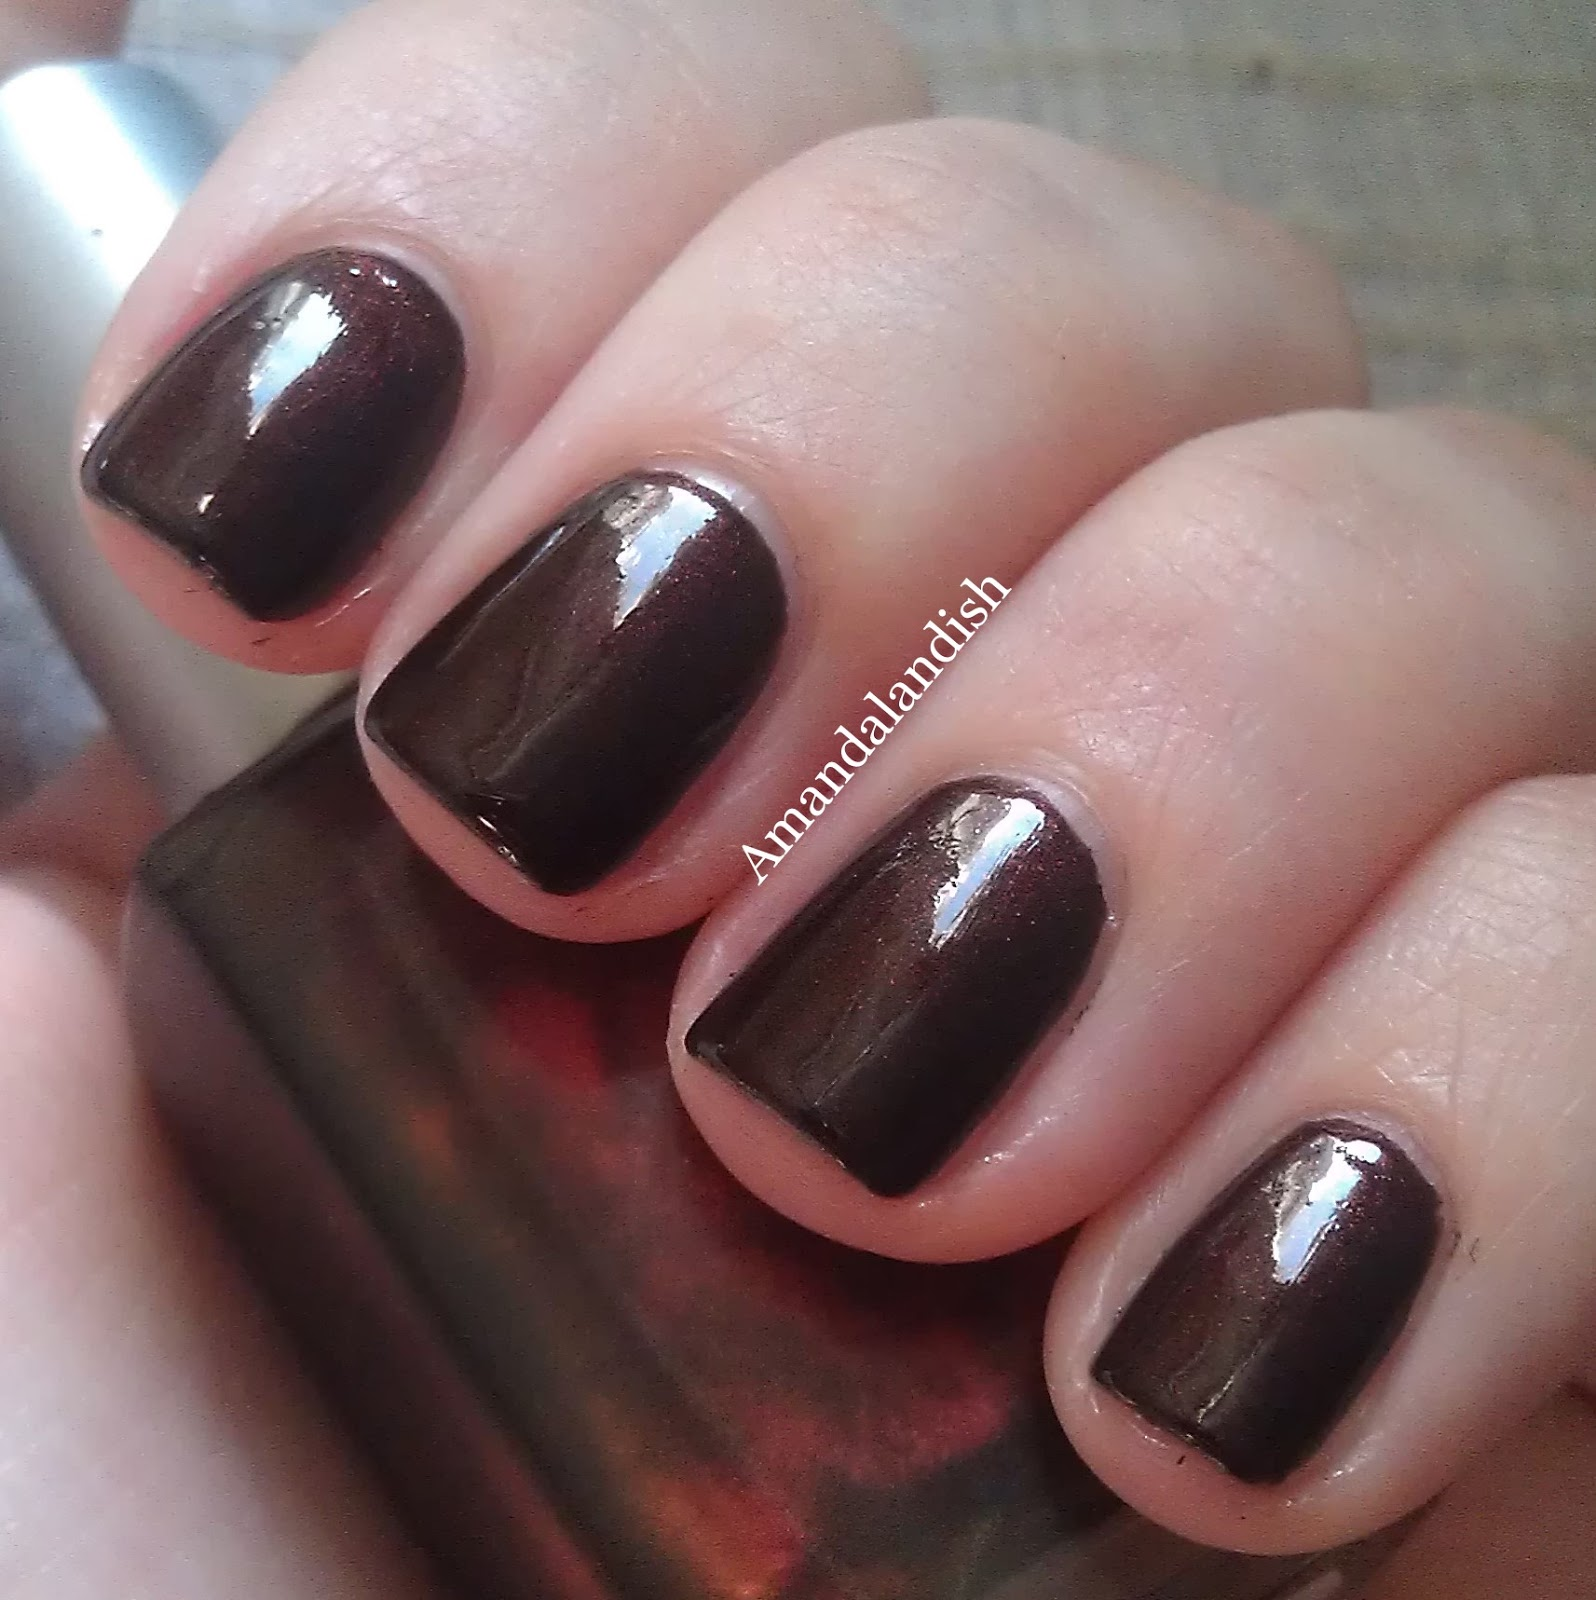 Amandalandish: Diamond Cosmetics Cherry Tobacco